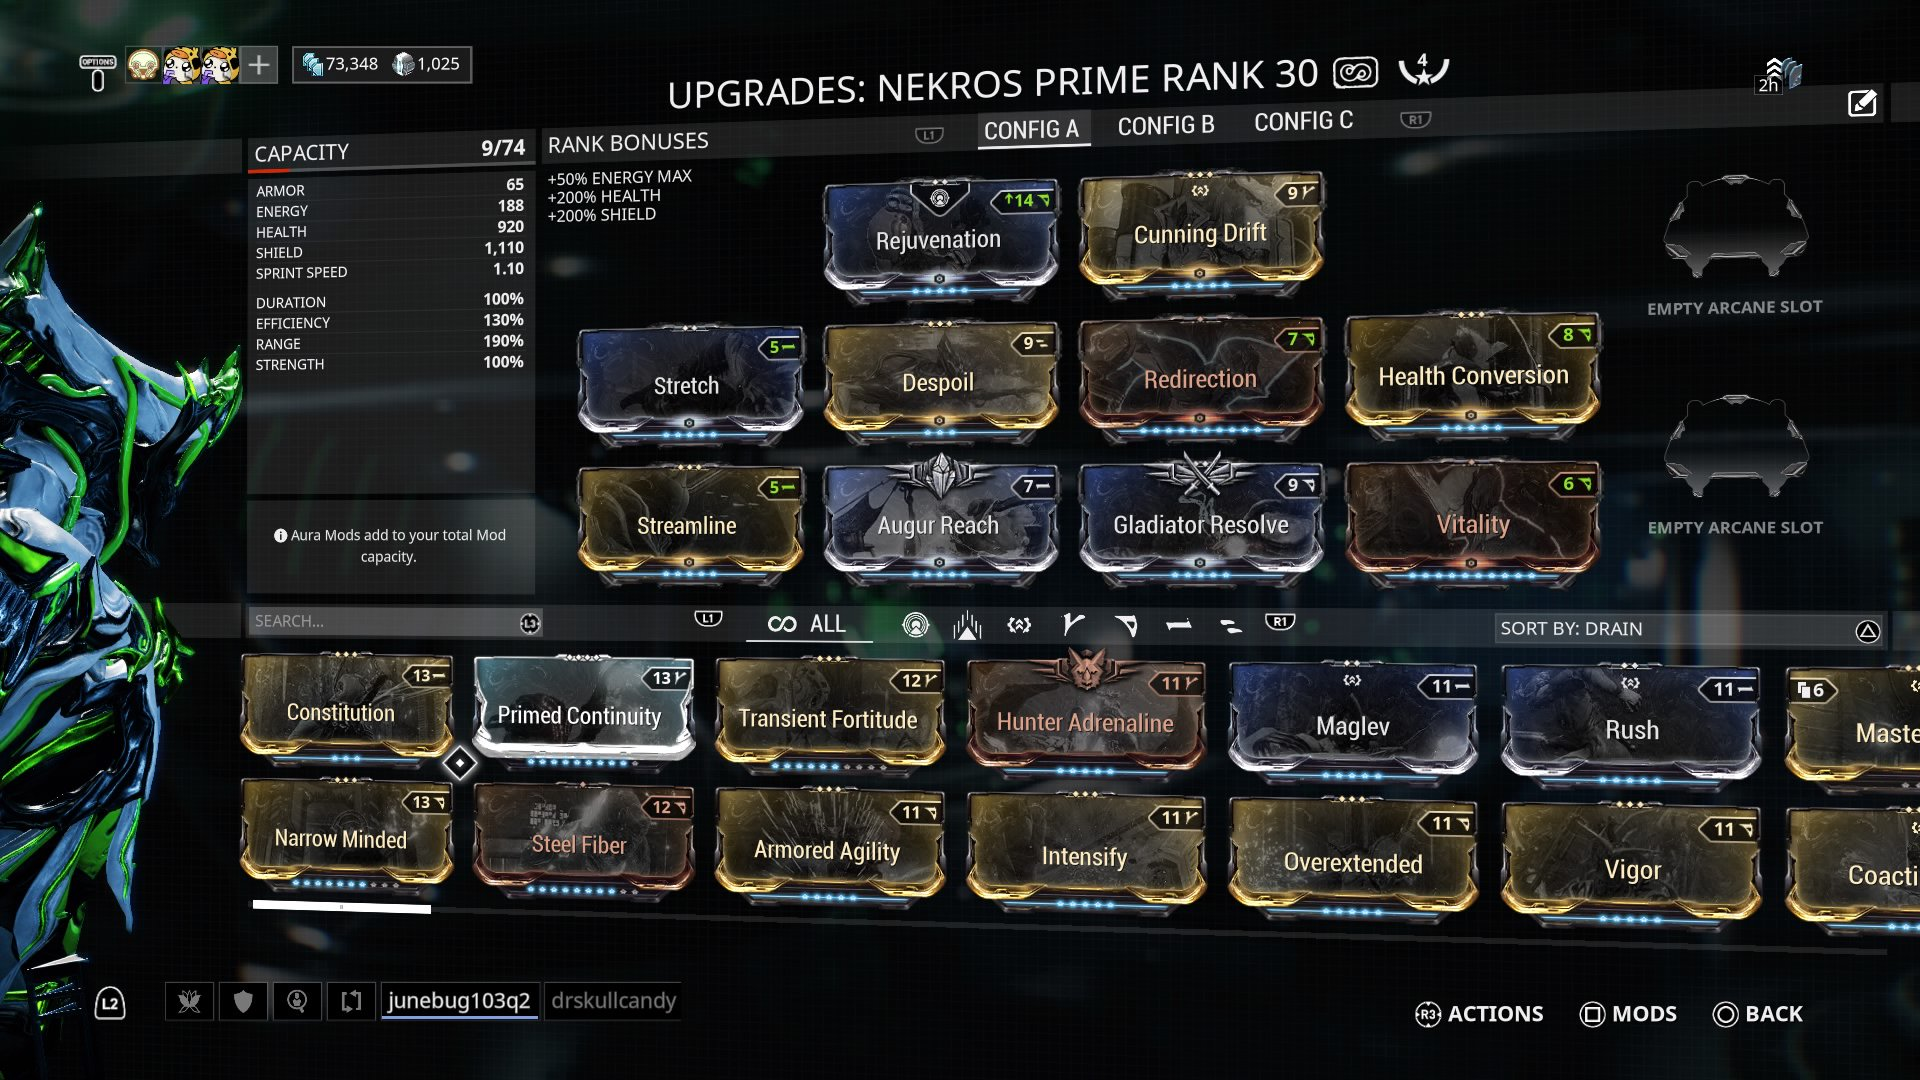 A tanky Nekros build to farm (mod combos build) - General